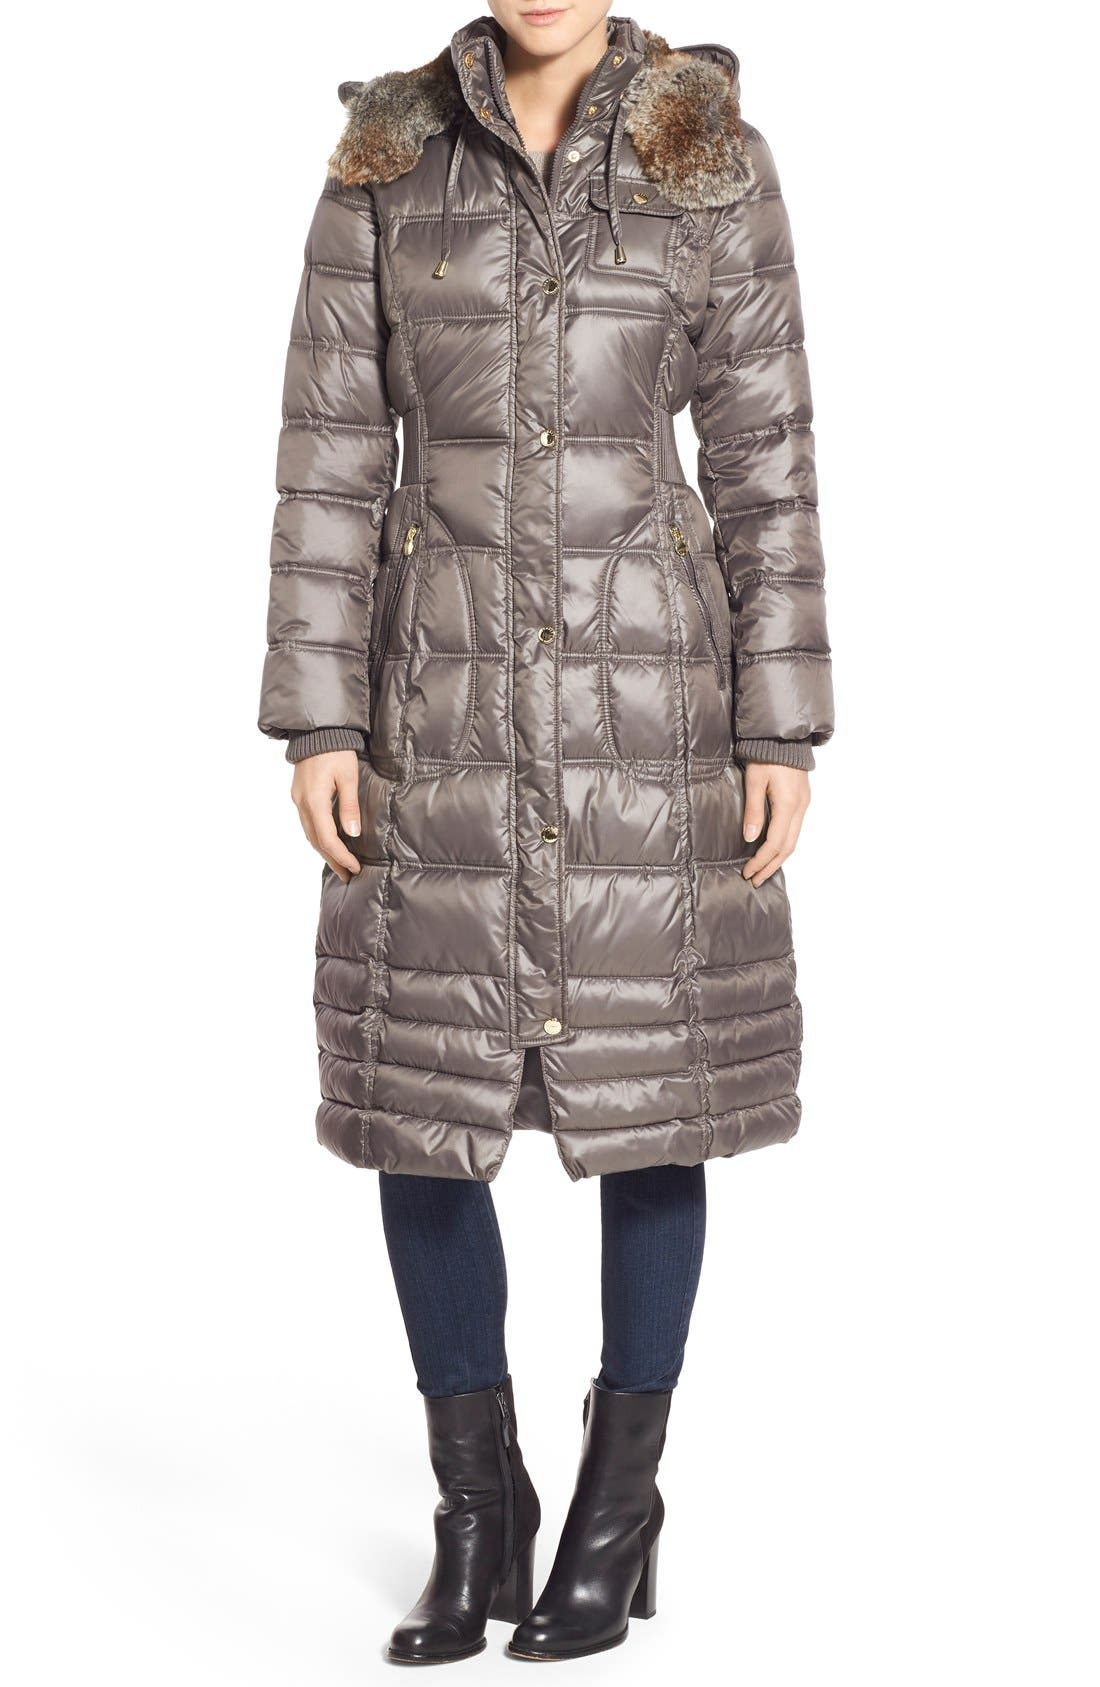 Alternate Image 1 Selected - Laundry by Design Quilted Coat with FauxFur Lined Hood